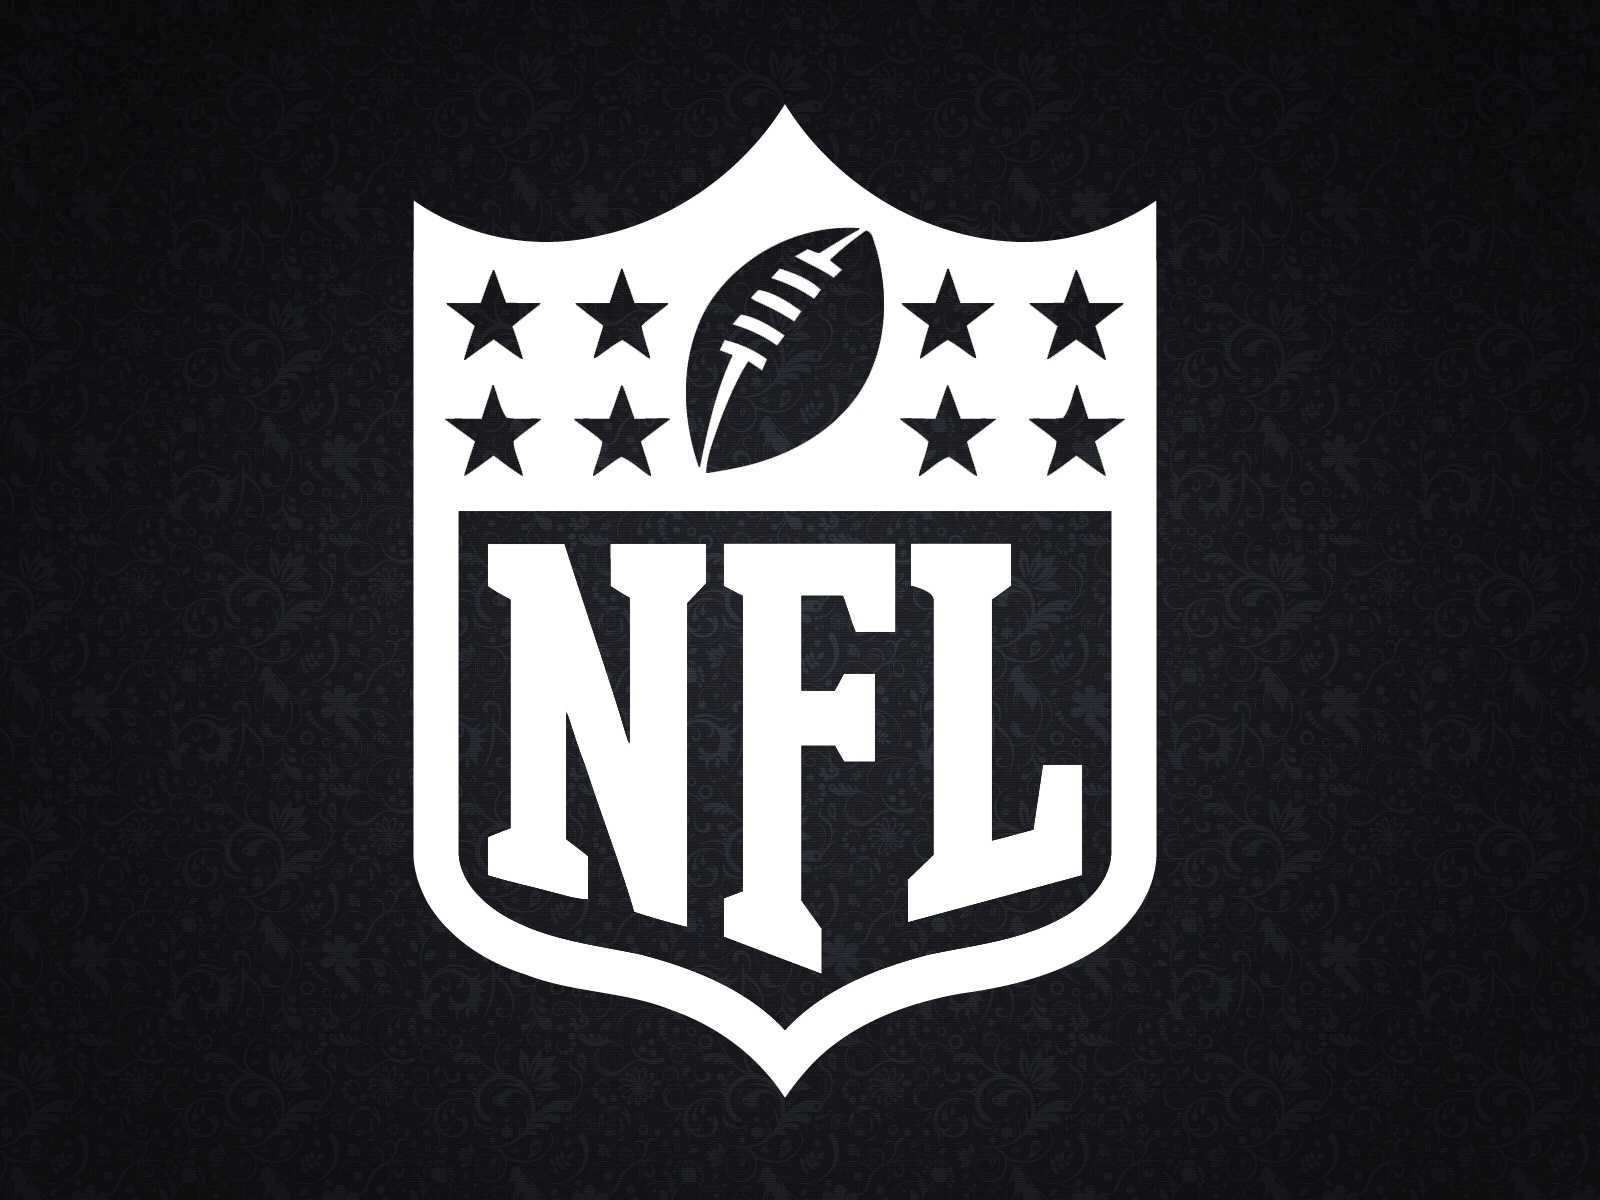 Salary Cap Casualties, No Money and the NHL: NFL Is In a Tough Spot